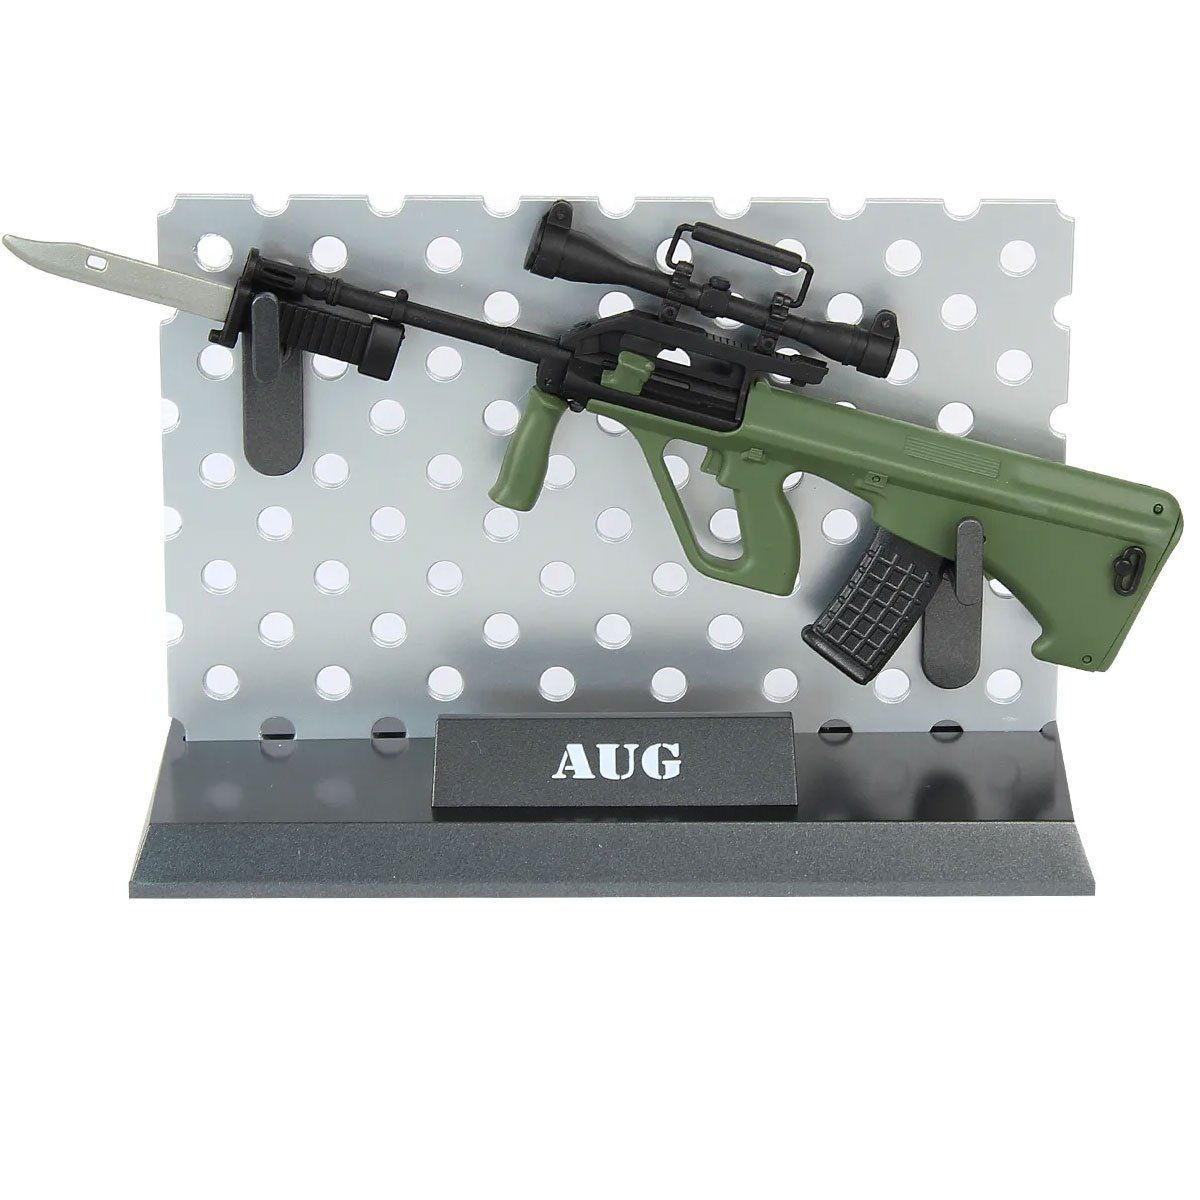 Miniatura Rifle  Steyr AUG Oliva C/ Faca Arsenal Guns